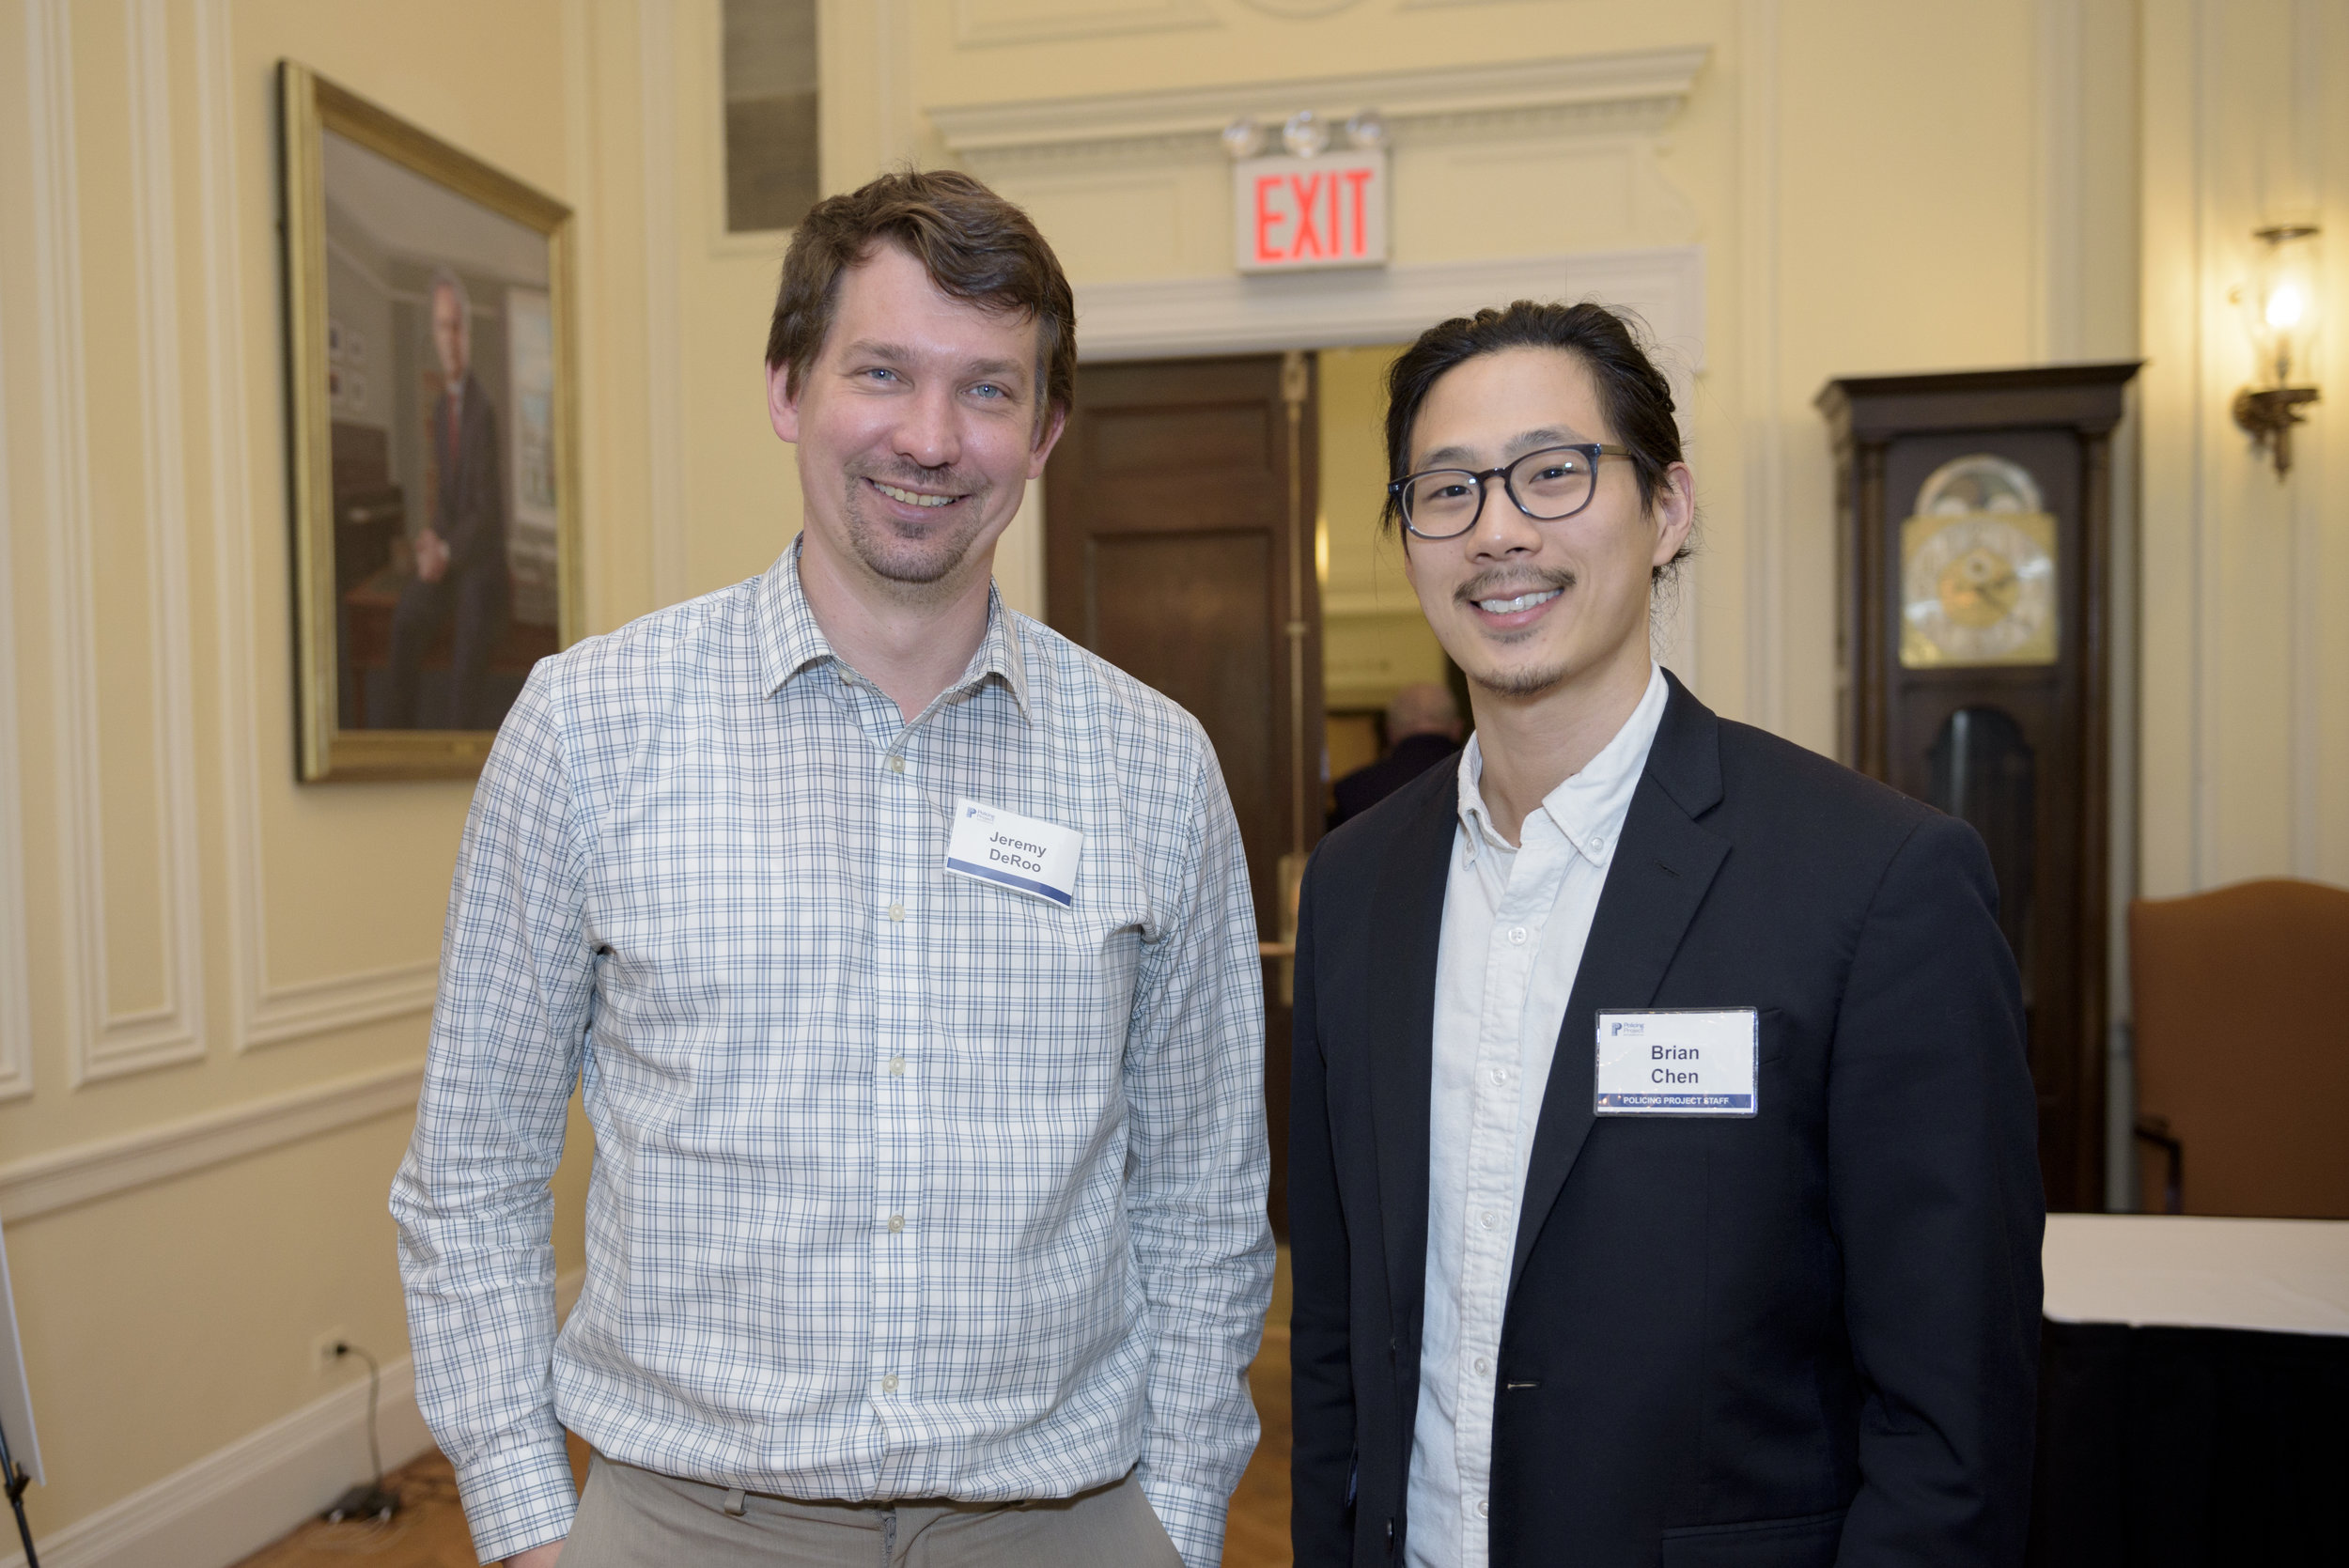 Jeremy DeRoo, executive director of LINC UP of Grand Rapids, Michigan, with Brian Chen.